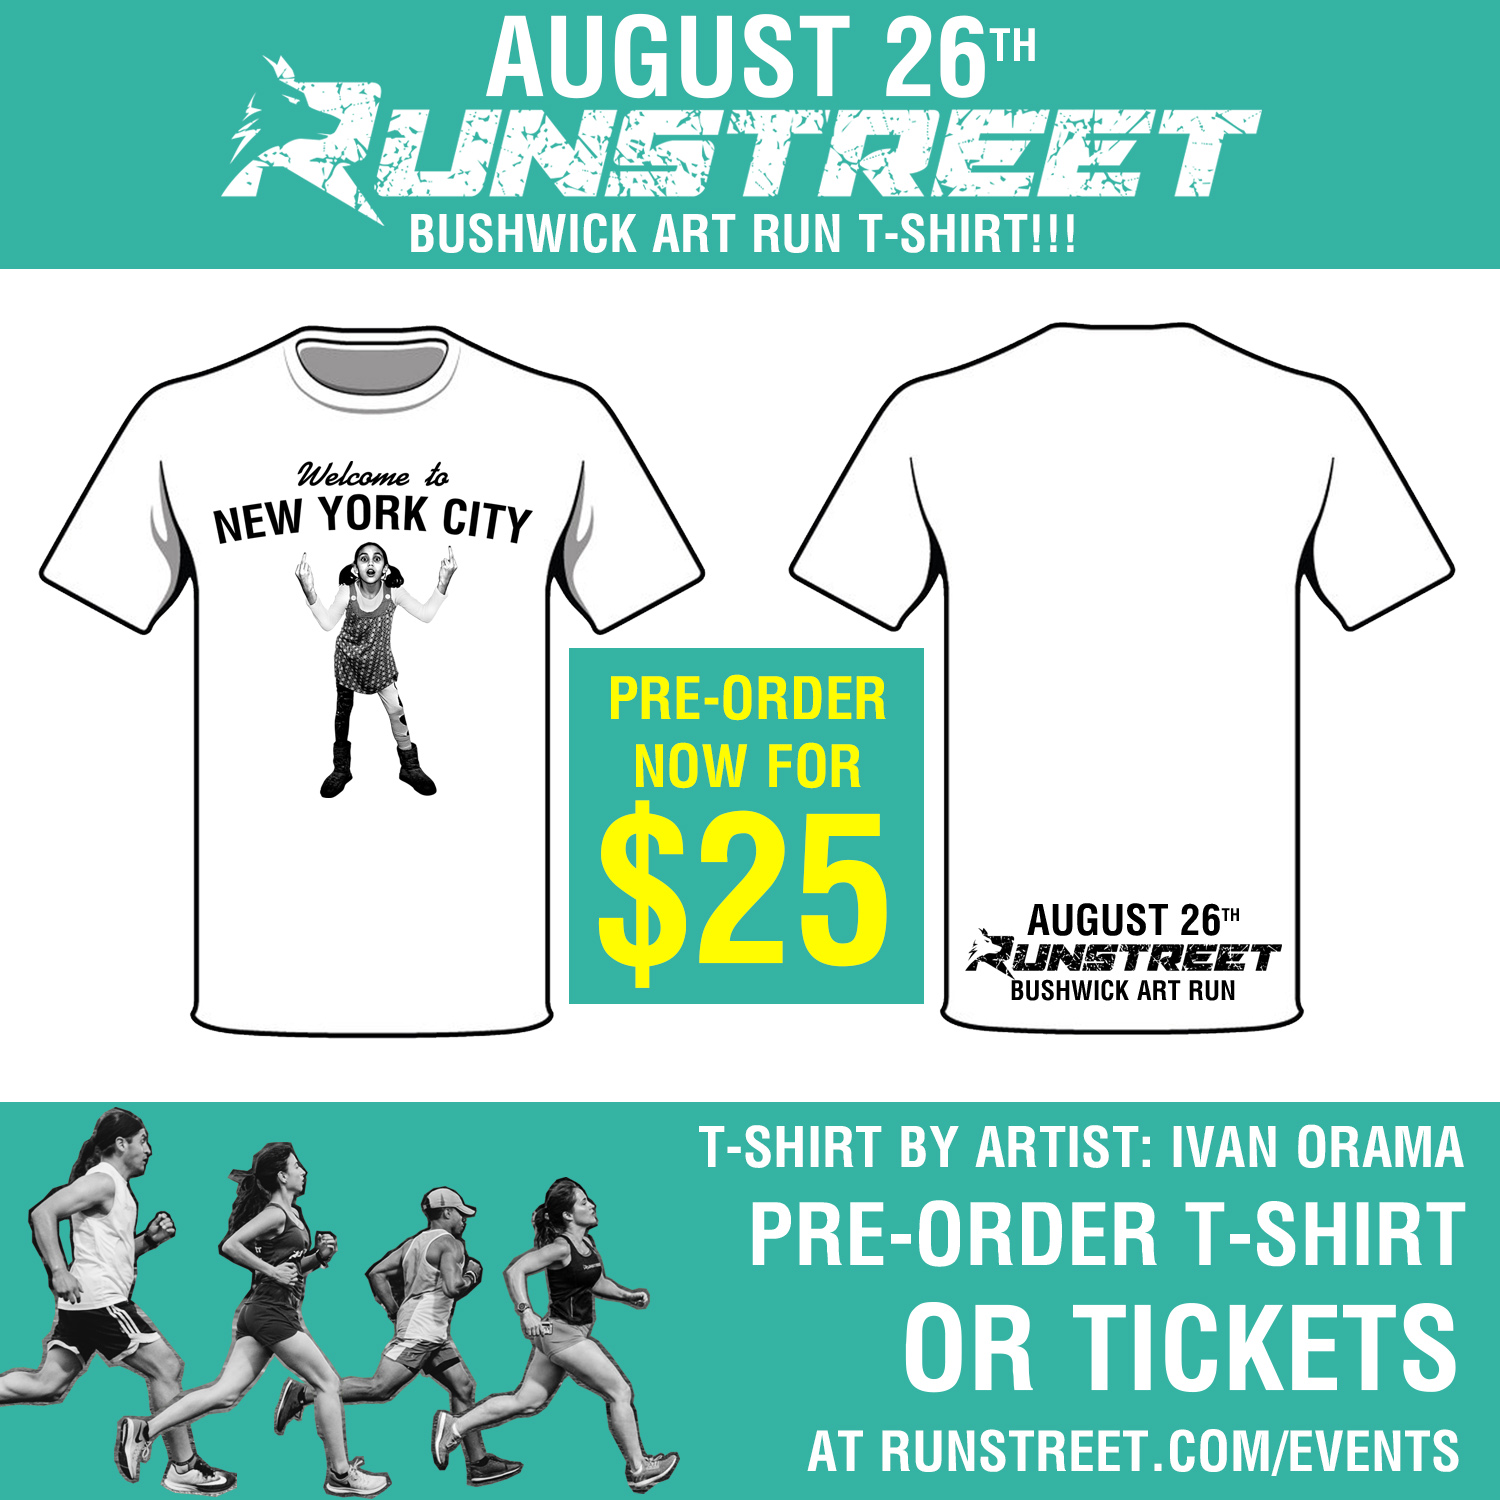 Shirt pre-orders end at midnight EST Sunday, August 20, 2017. Shirts will be available at the event for $30 and sizes are only guaranteed for pre-orders.